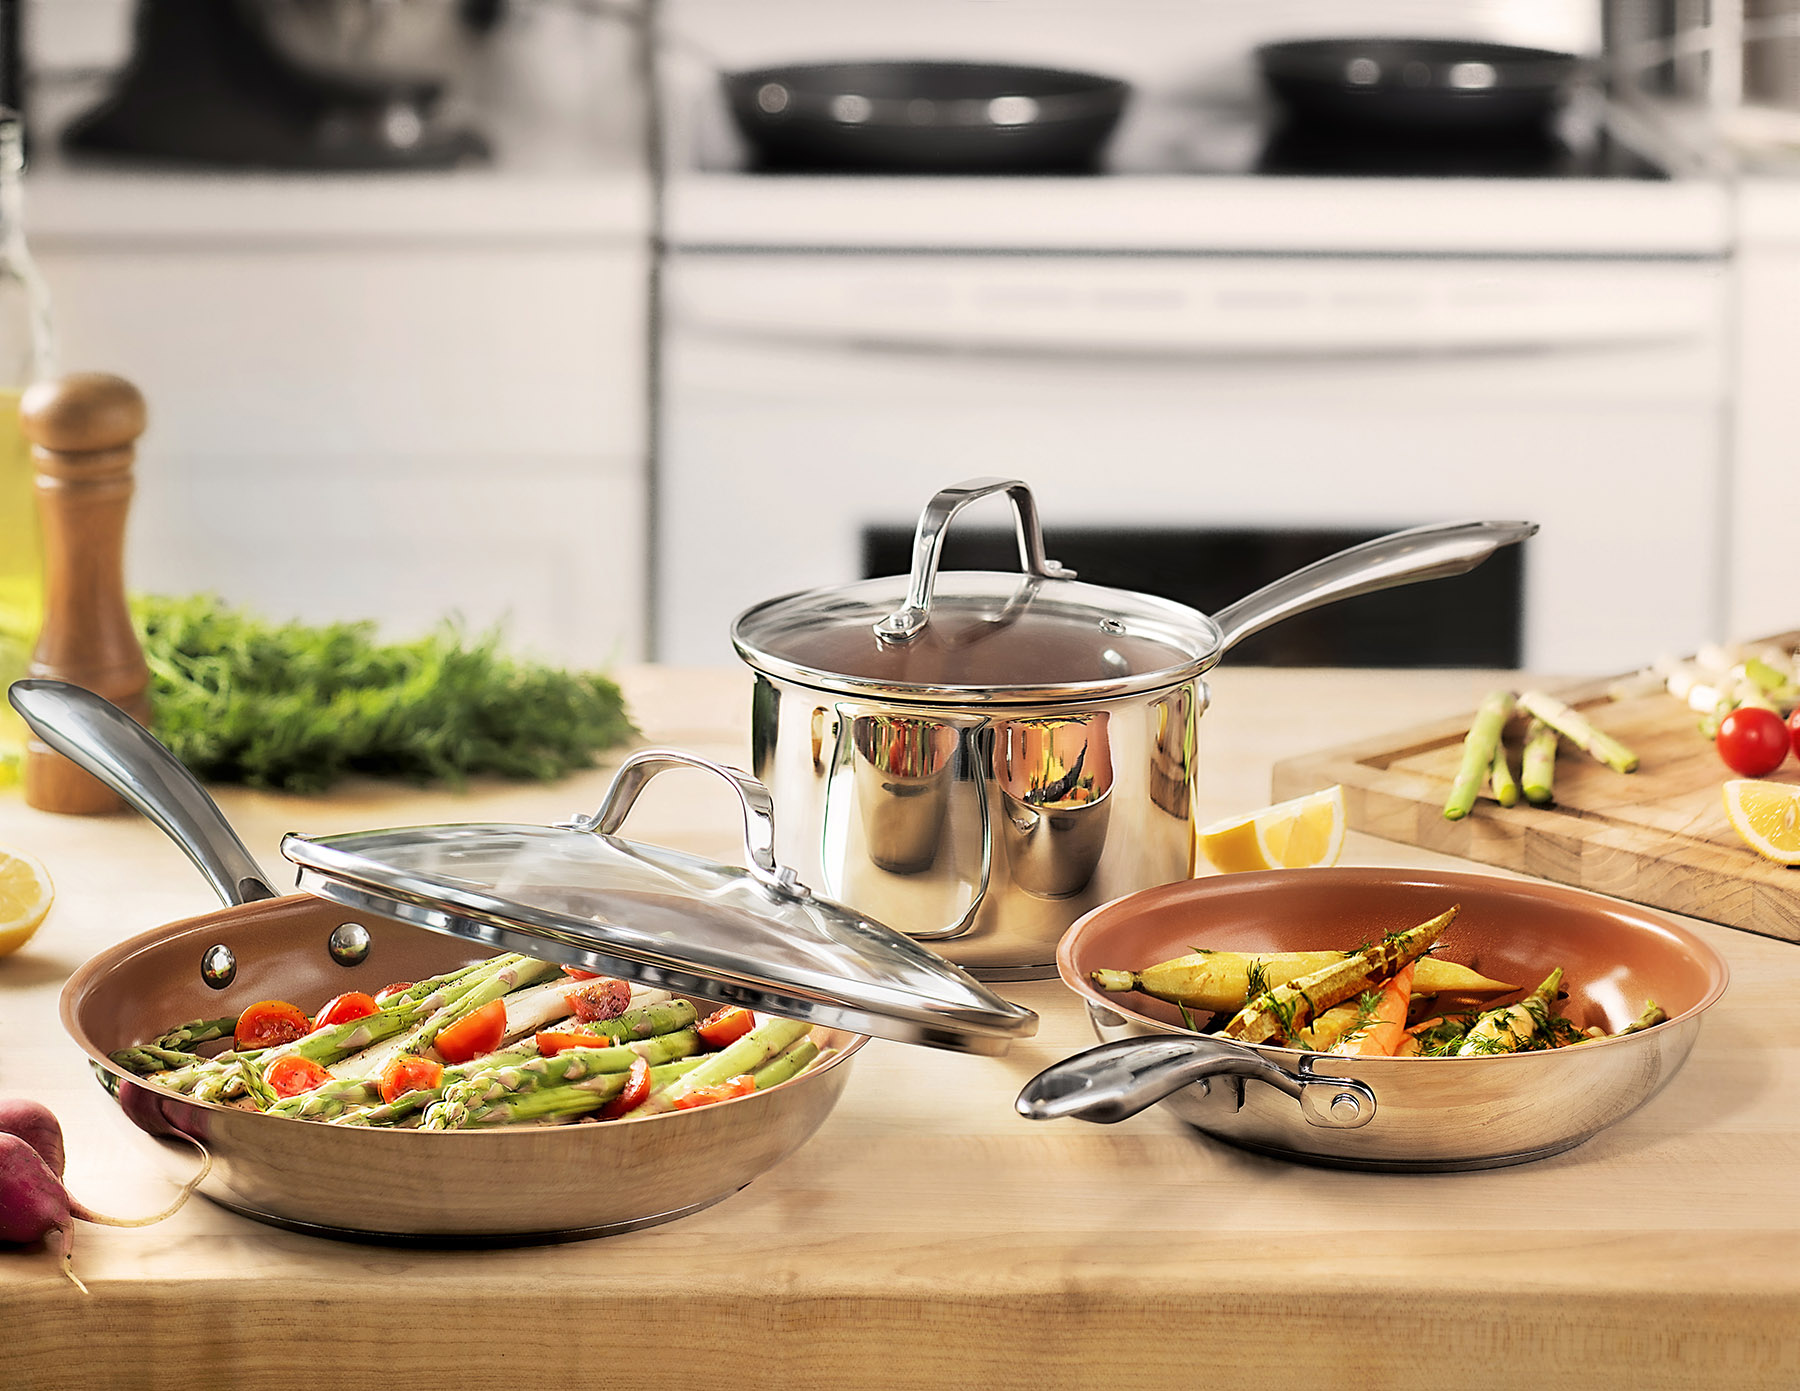 New-york-food-photographer-cookware-sets-in-luxury-kitchen